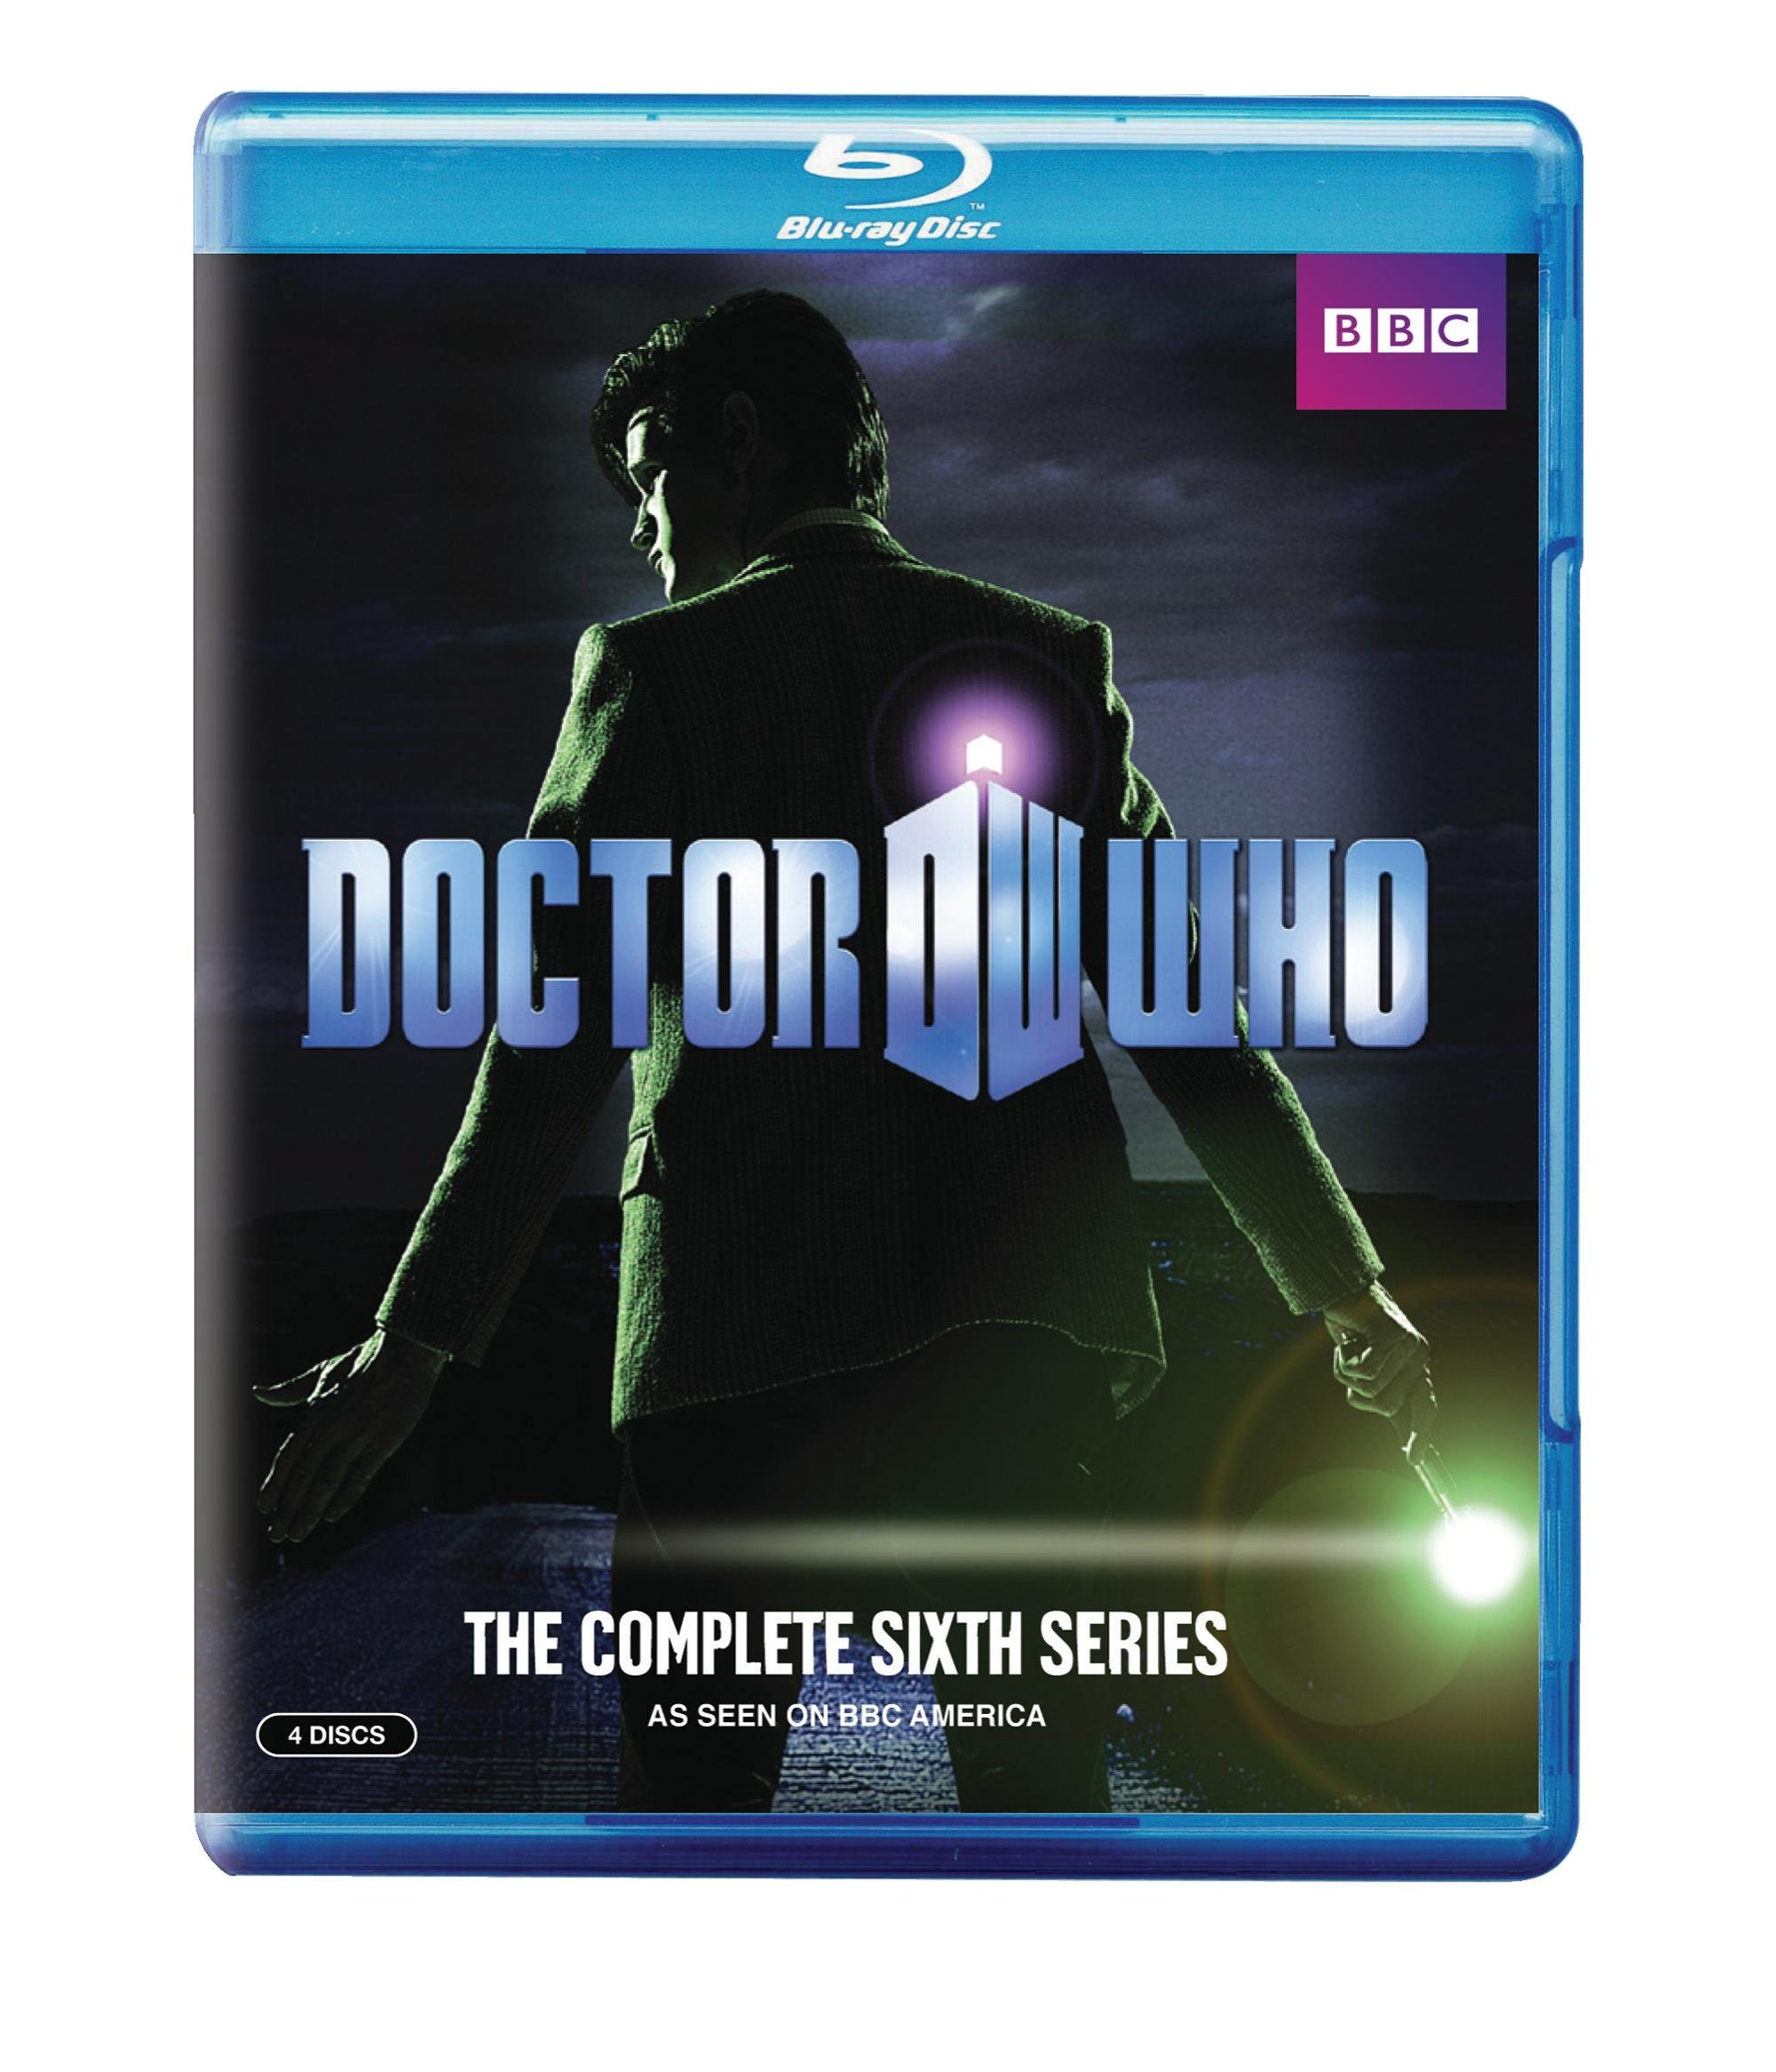 Doctor Who: The Complete Sixth Series (Blu-ray)